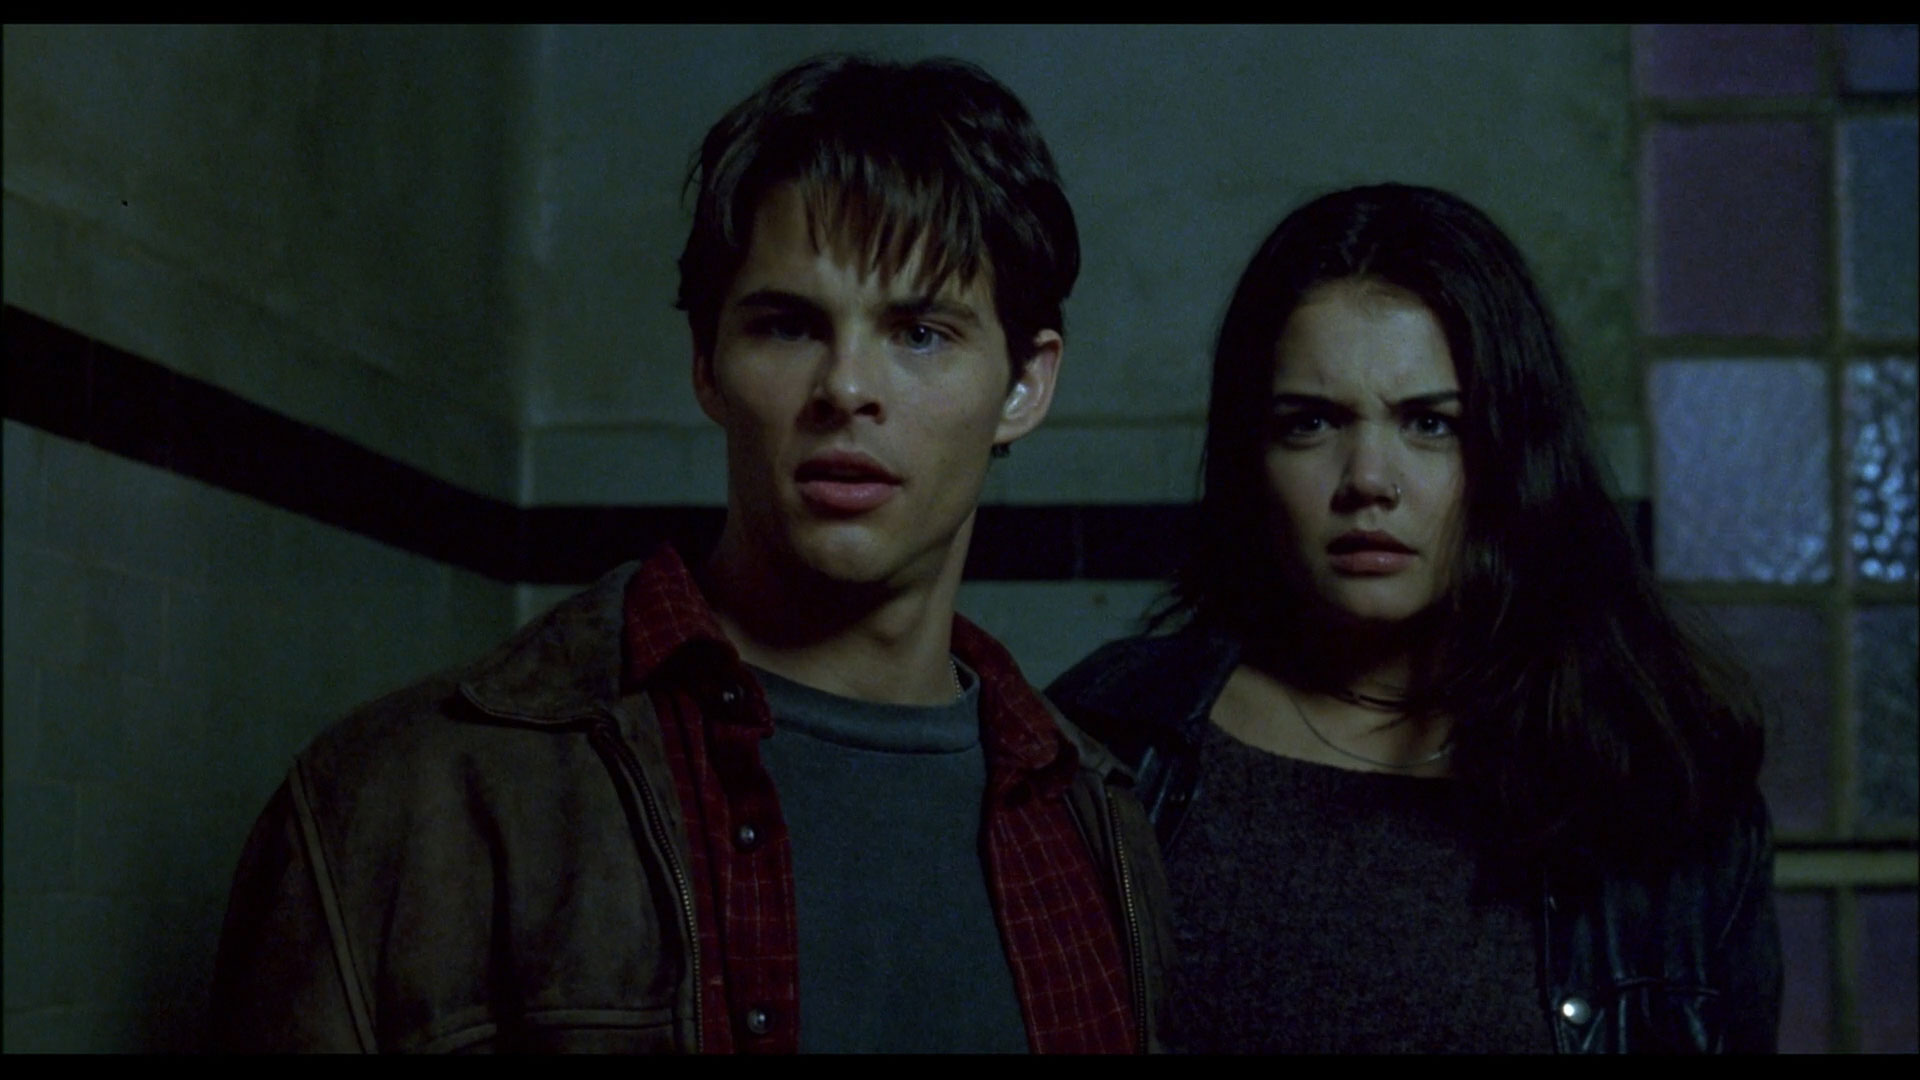 Disturbing Behavior - James Marsden and Katie Holmes